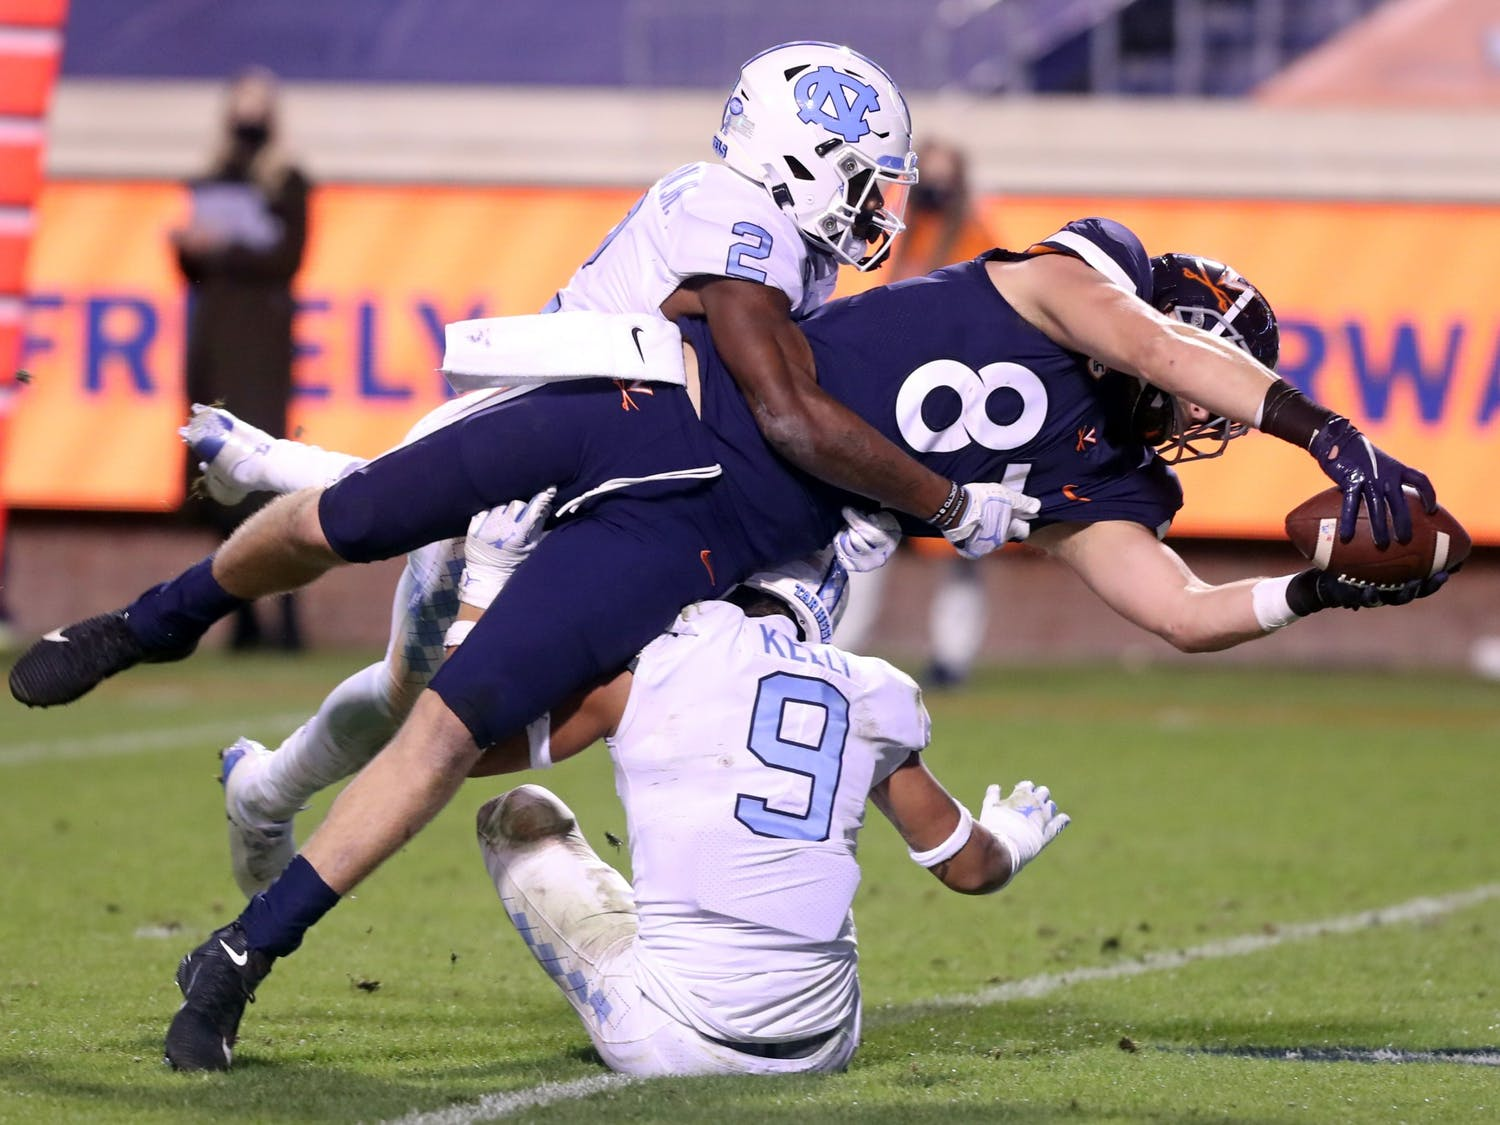 Virginia tight end Tony Poljan (87) reaches between North Carolina Tar Heels defensive back Don Chapman (2) and North Carolina defensive back Cam'Ron Kelly (9) for a touchdown during the game Saturday in Charlottesville, Va. Virginia defeated North Carolina 44-41. Photo courtesy of Andrew Shurtleff for the Daily Progress via the ACC